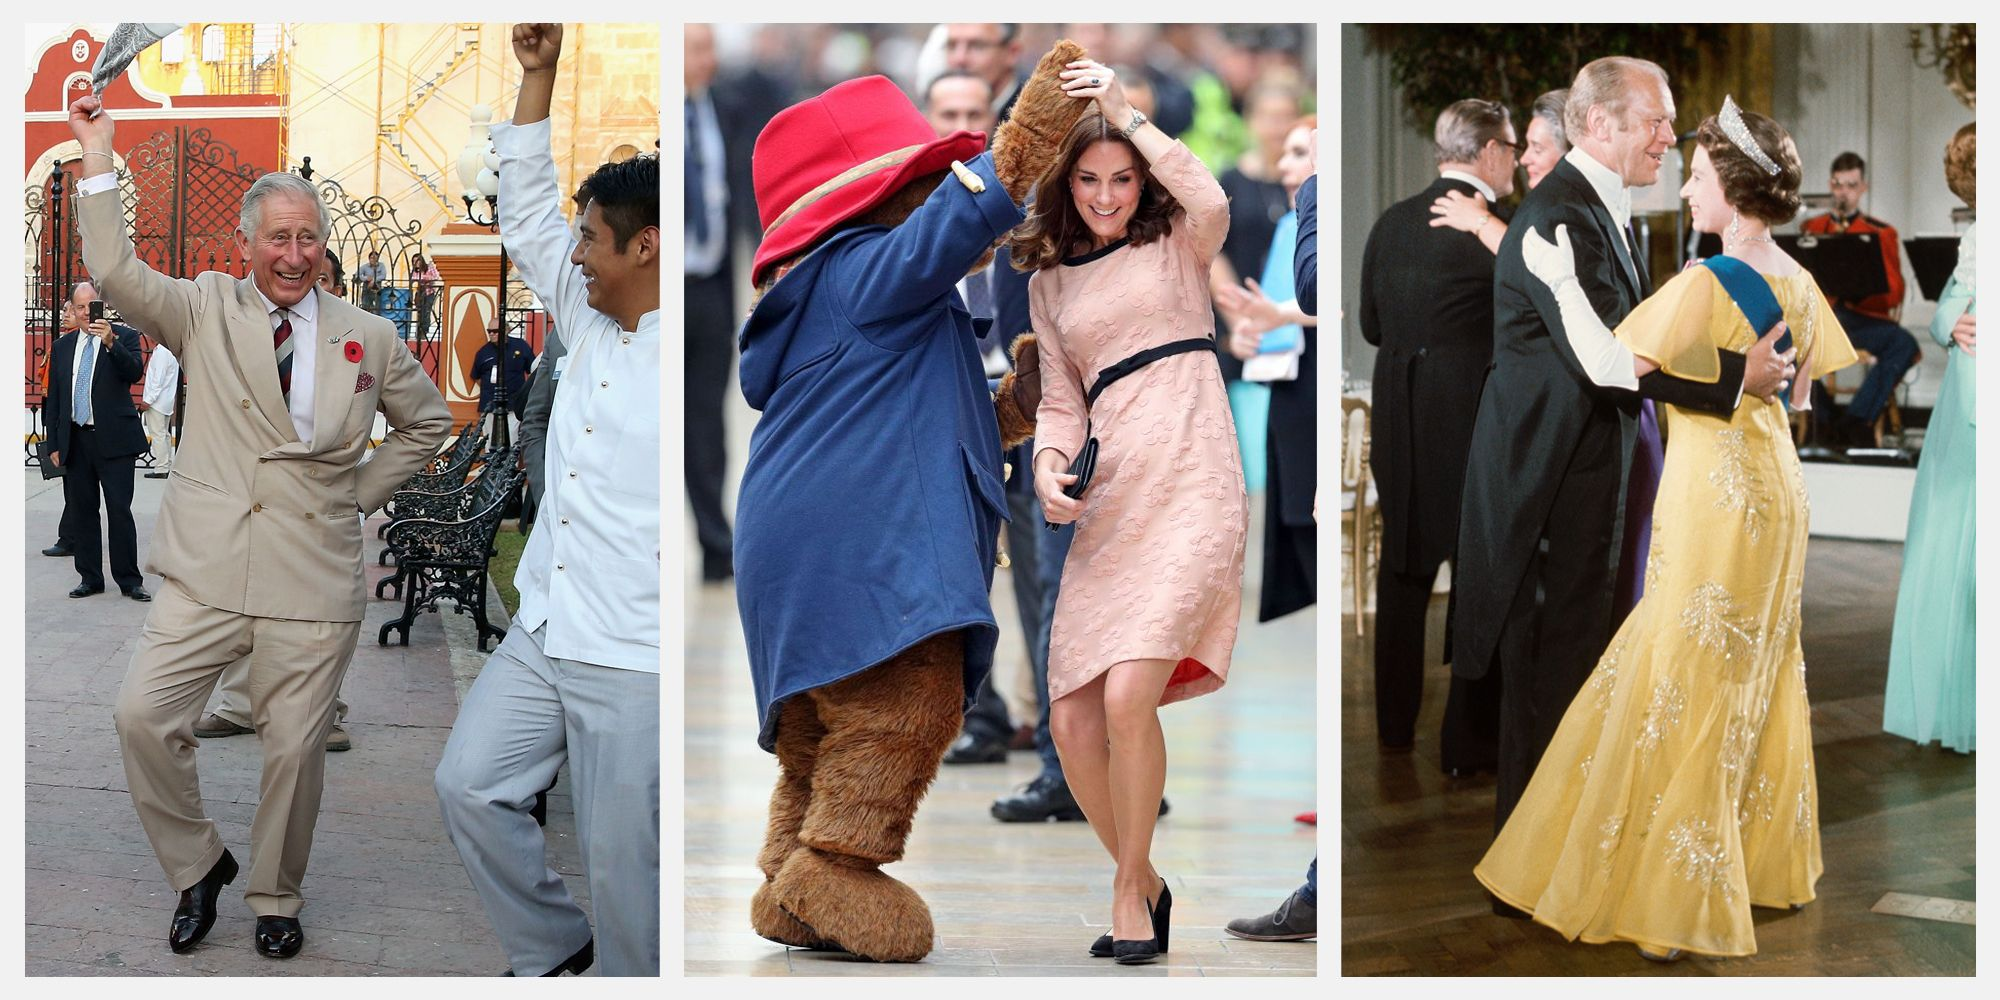 21 Photos of Queen Elizabeth, Kate Middleton, Prince Harry, and More Royal Family Members Dancing